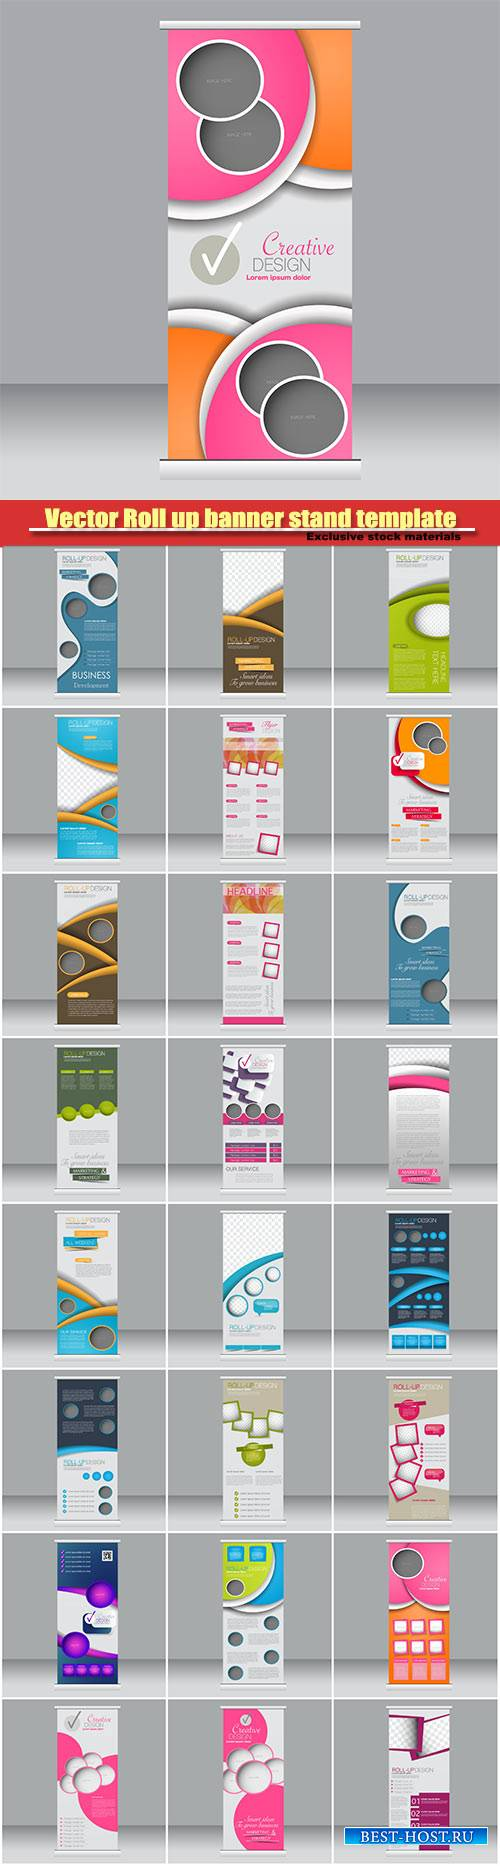 Vector Roll up banner stand template, abstract background for design, busin ...